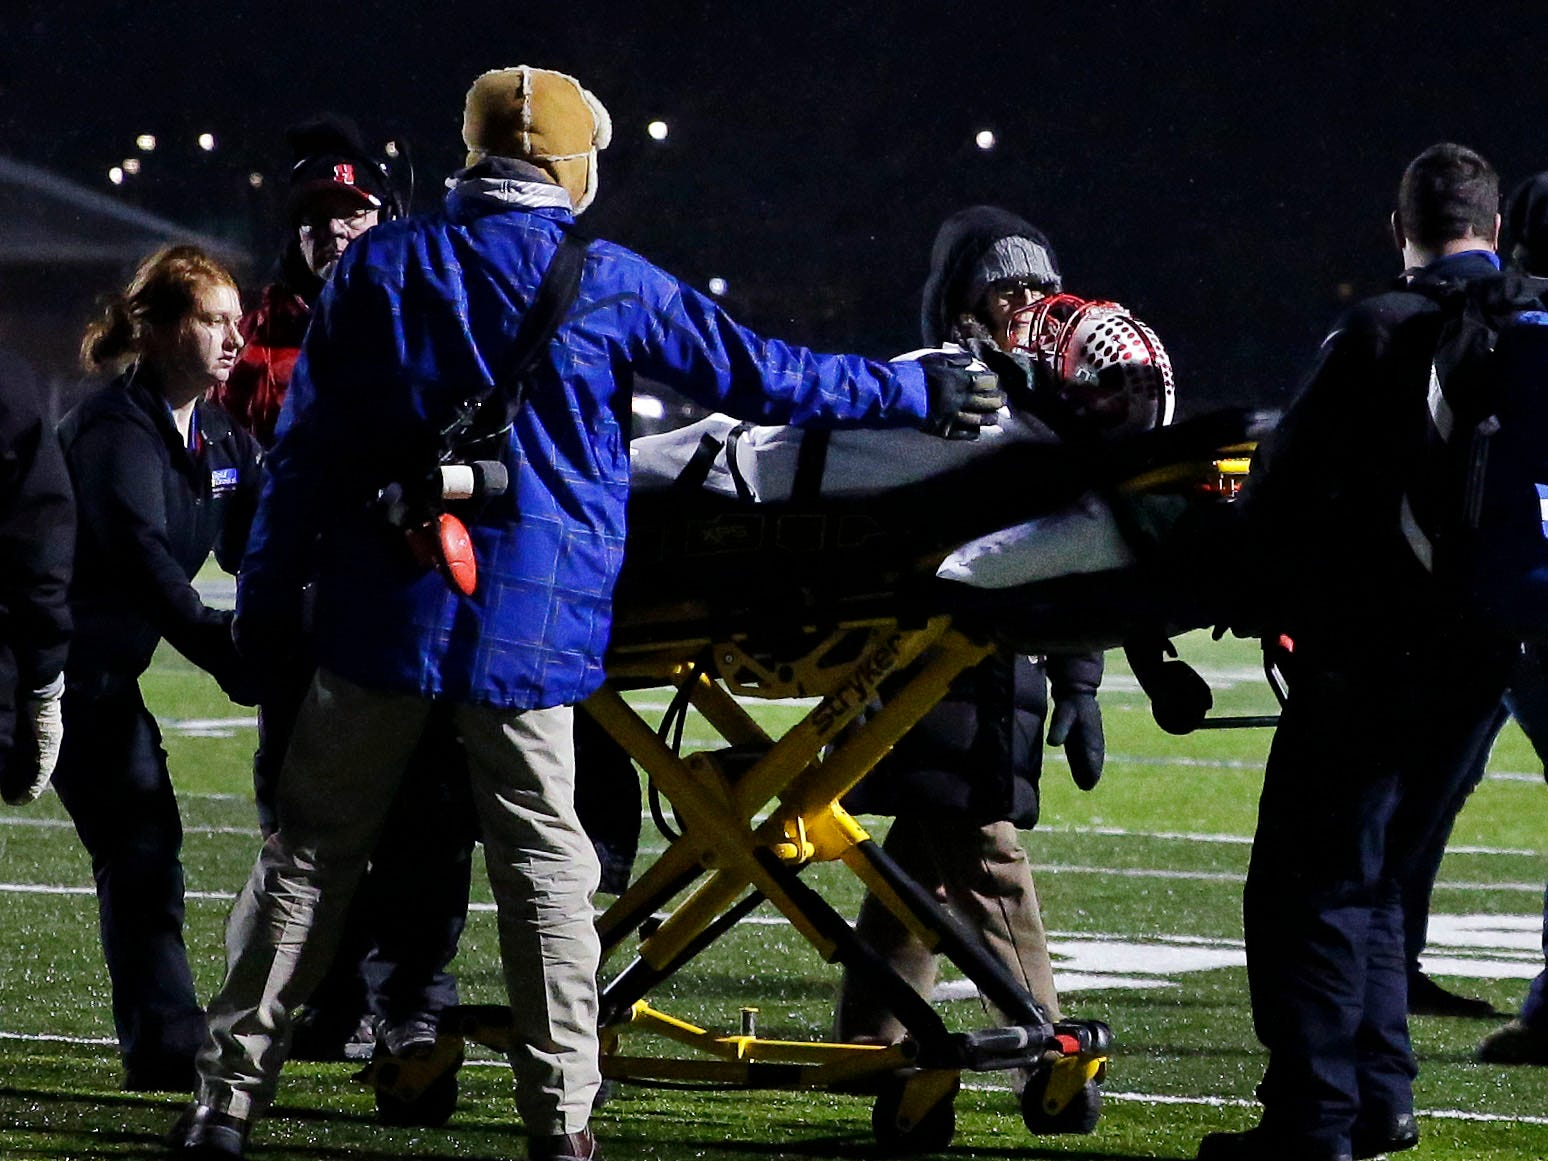 Jaiden Larrabee of Homestead is injured during a game against Marshfield in a WIAA Division 2 state semifinal football game Friday, November 9, 2018, at Calder Stadium in Menasha, Wis.Ron Page/USA TODAY NETWORK-Wisconsin